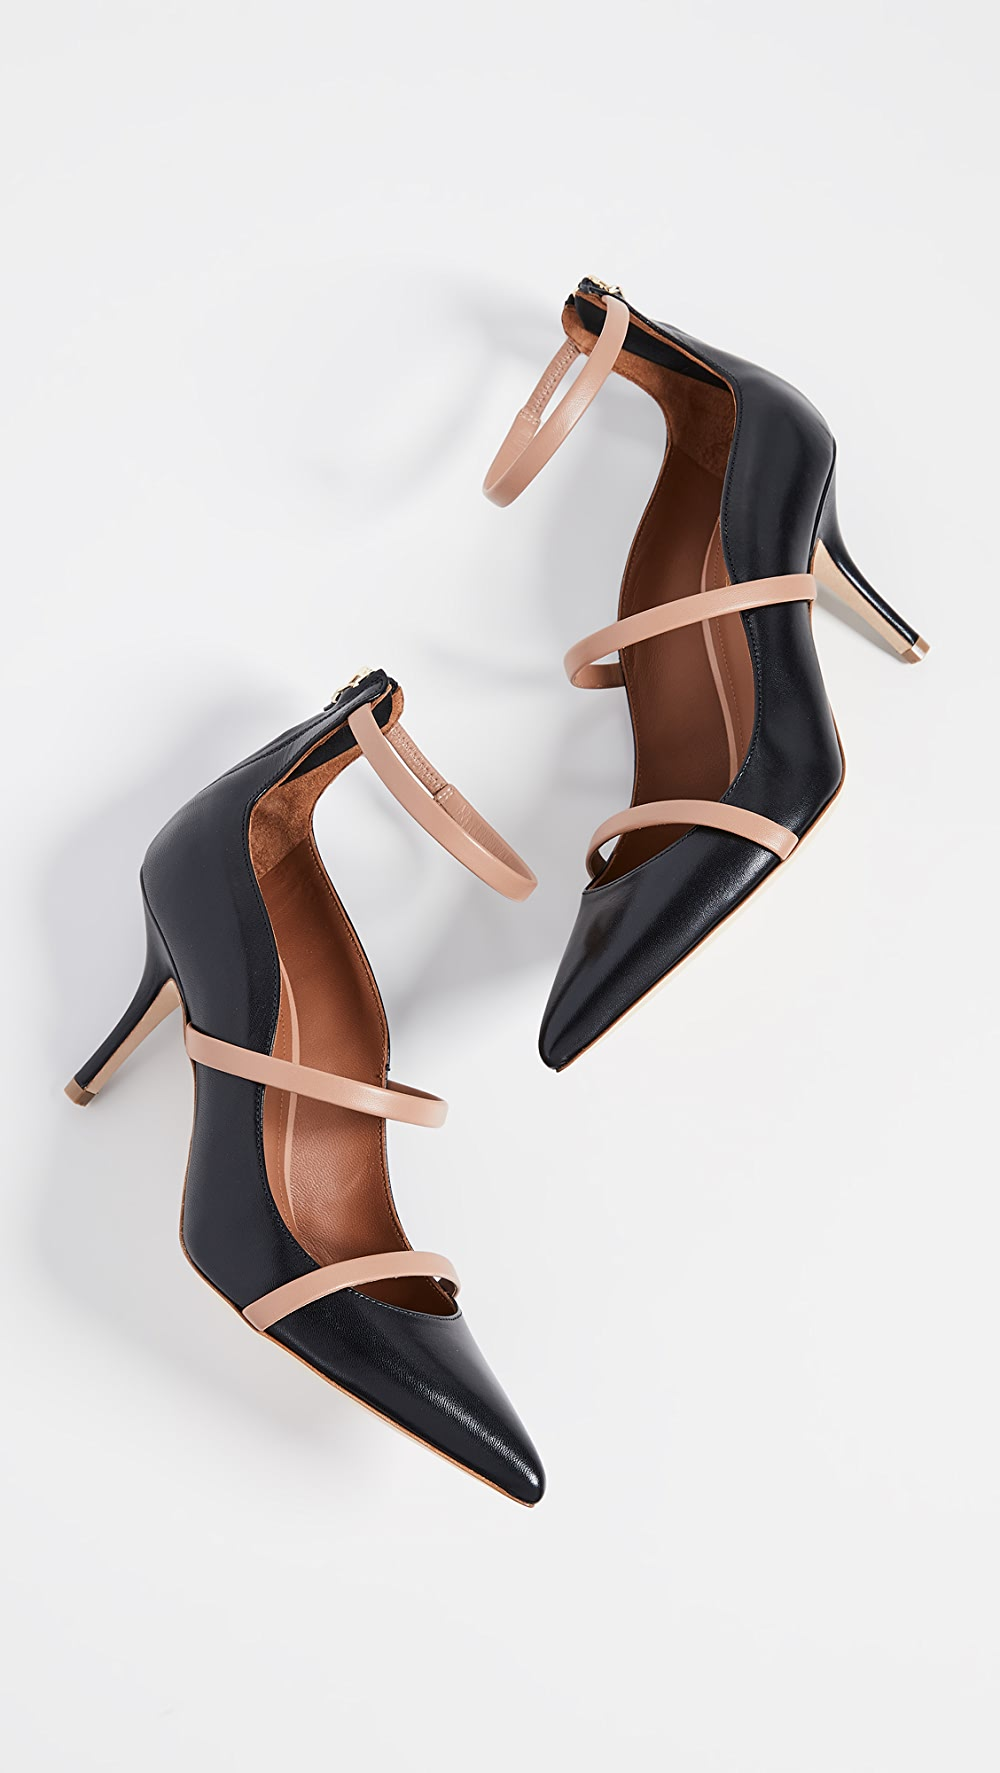 Brilliant Malone Souliers - Robyn Pumps To Ensure A Like-New Appearance Indefinably